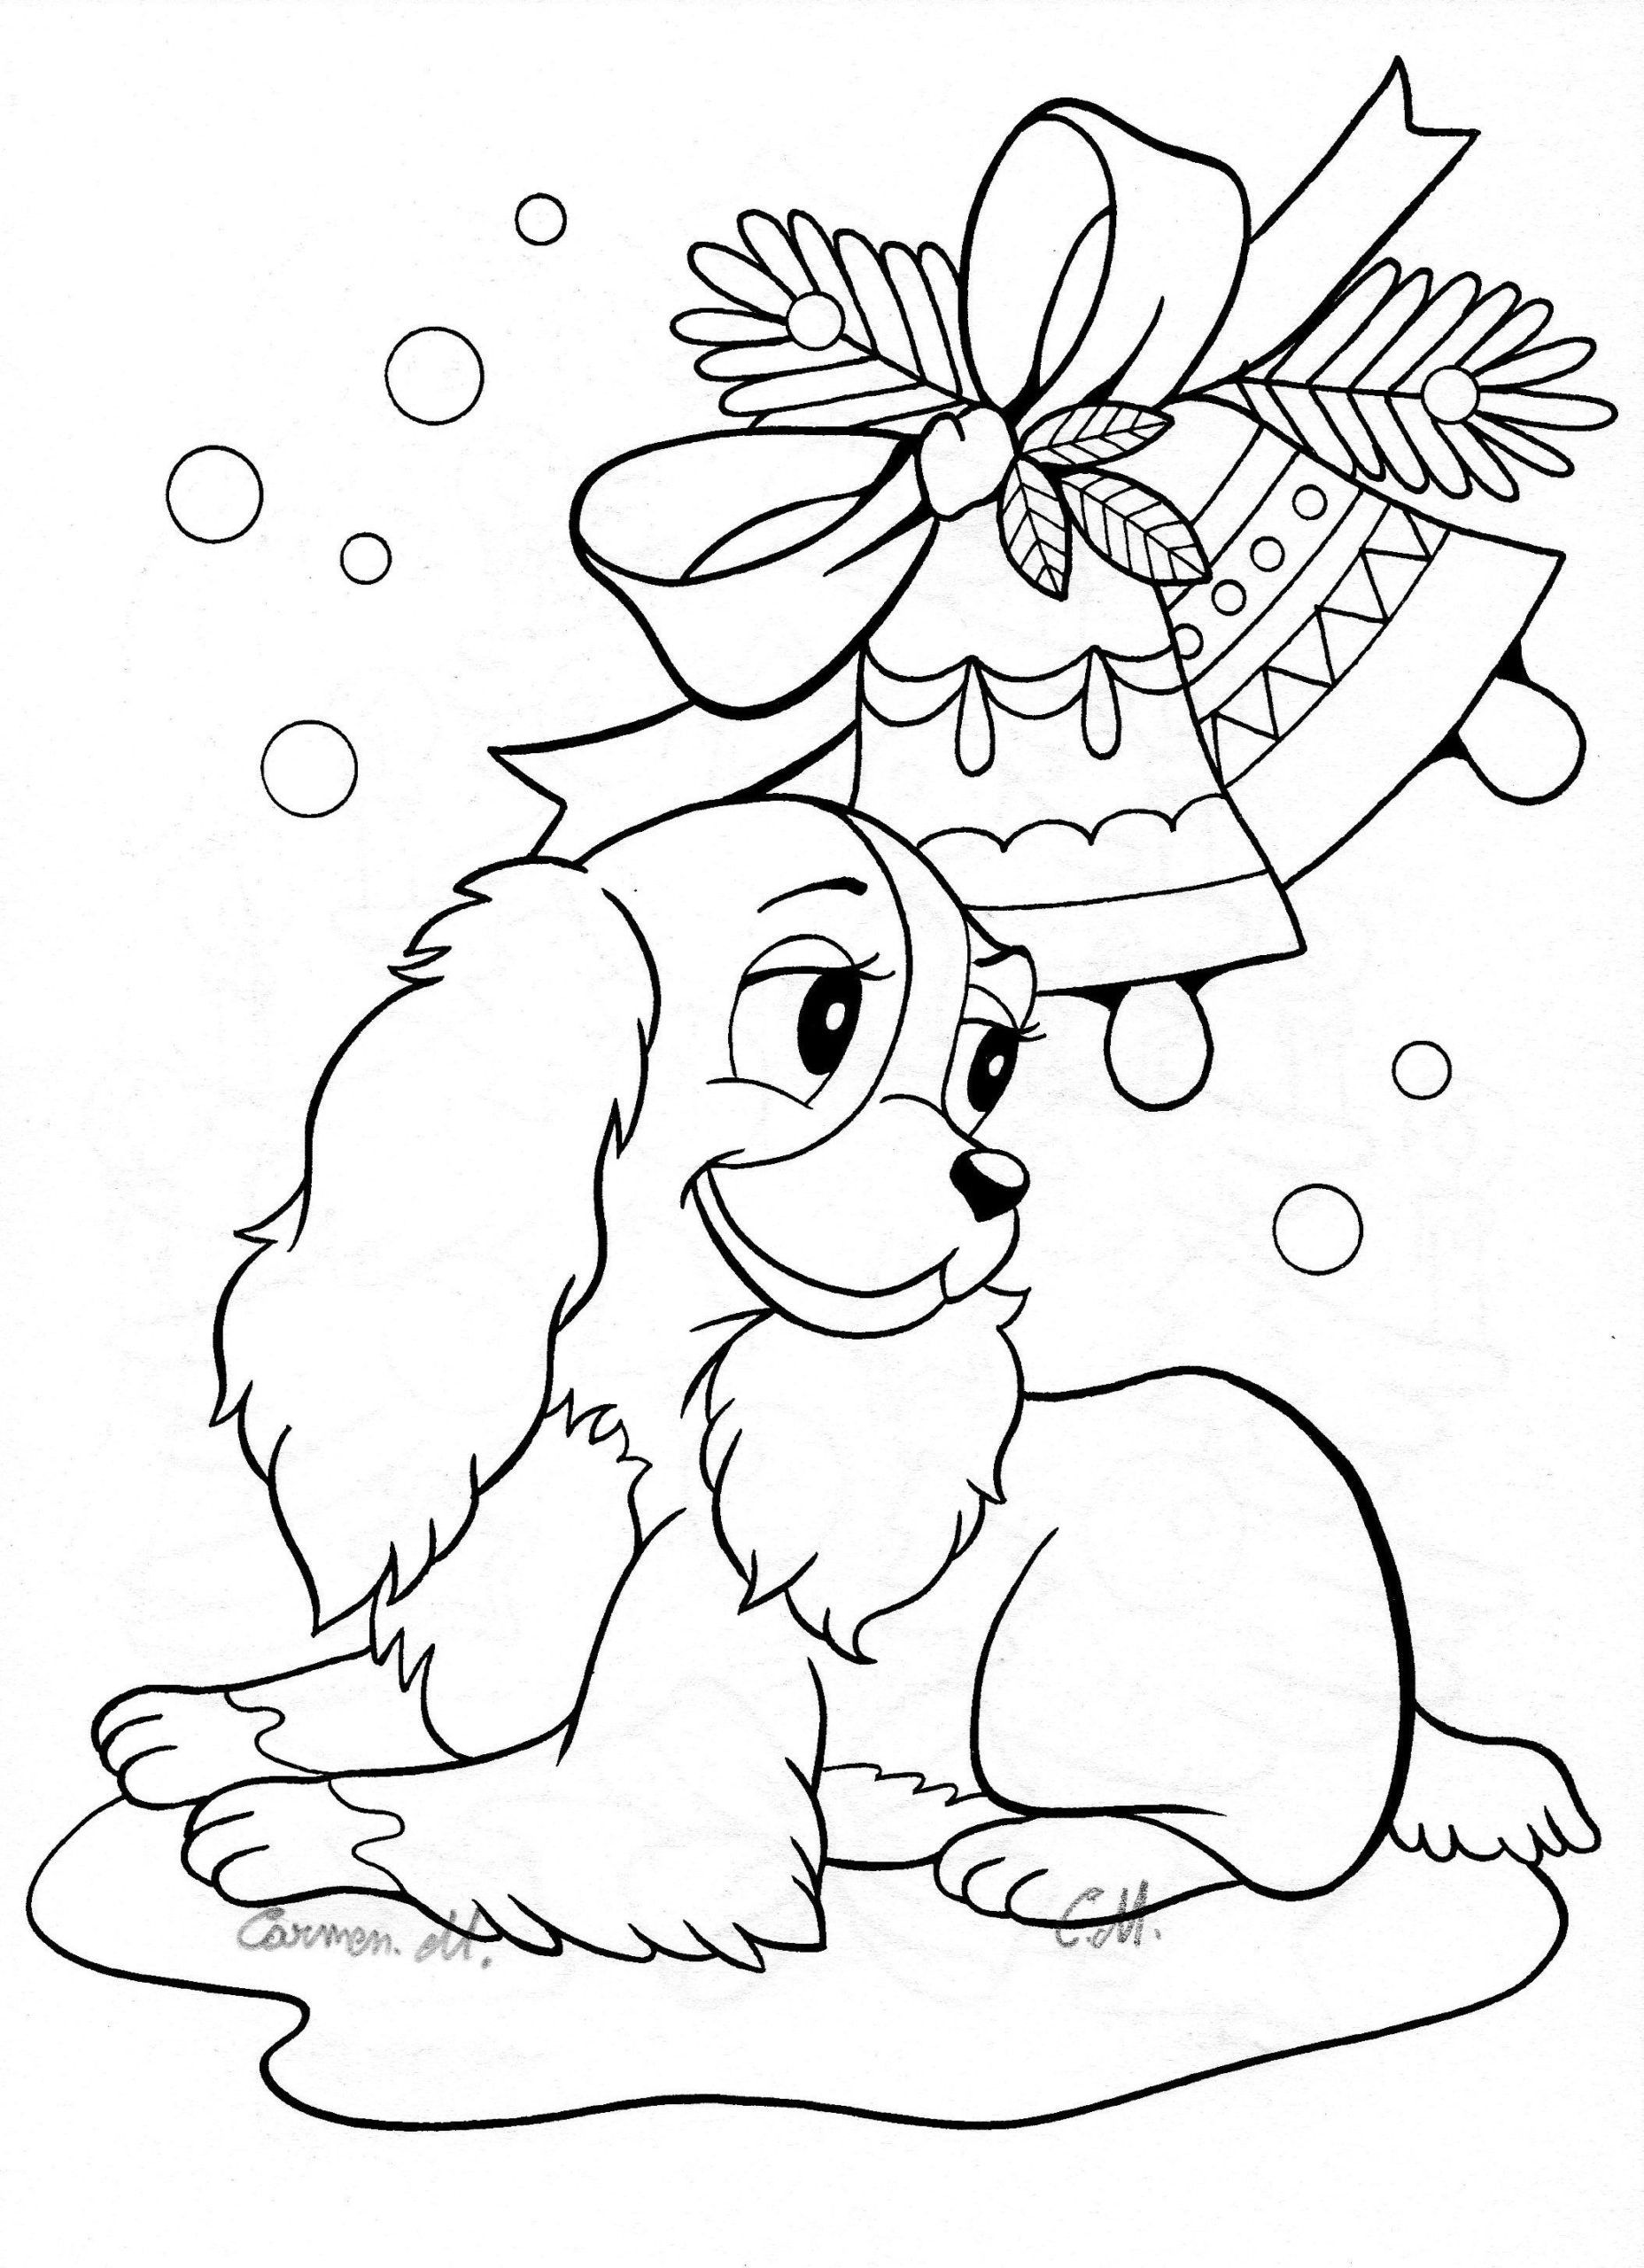 Puppy Christmas Coloring Pages Gallery Printable Christmas Coloring Pages Disney Coloring Pages Puppy Coloring Pages